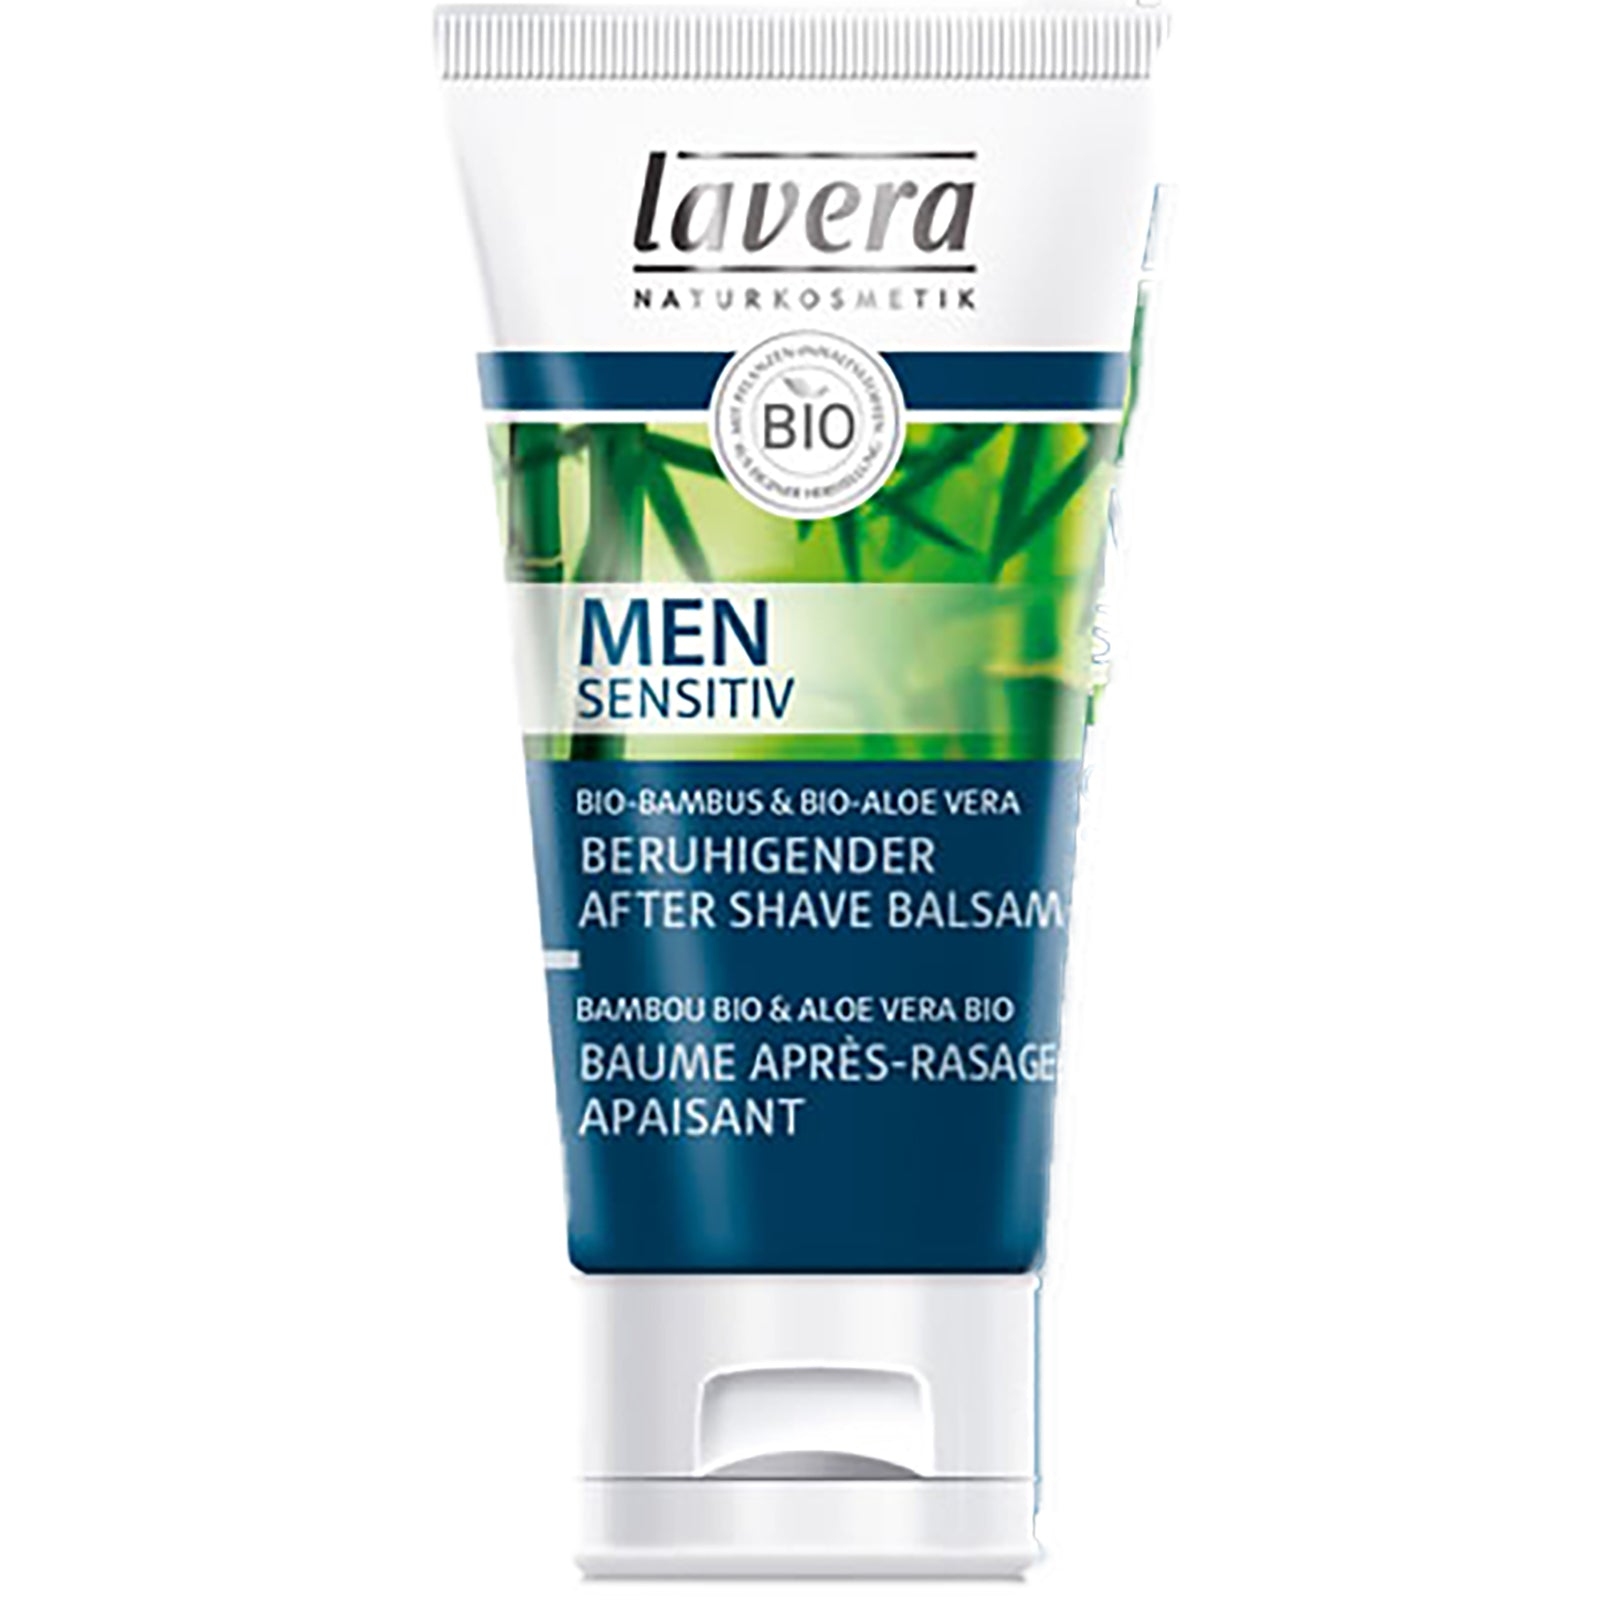 MEN SENSITIVE - Organic Calming After Shave Balm